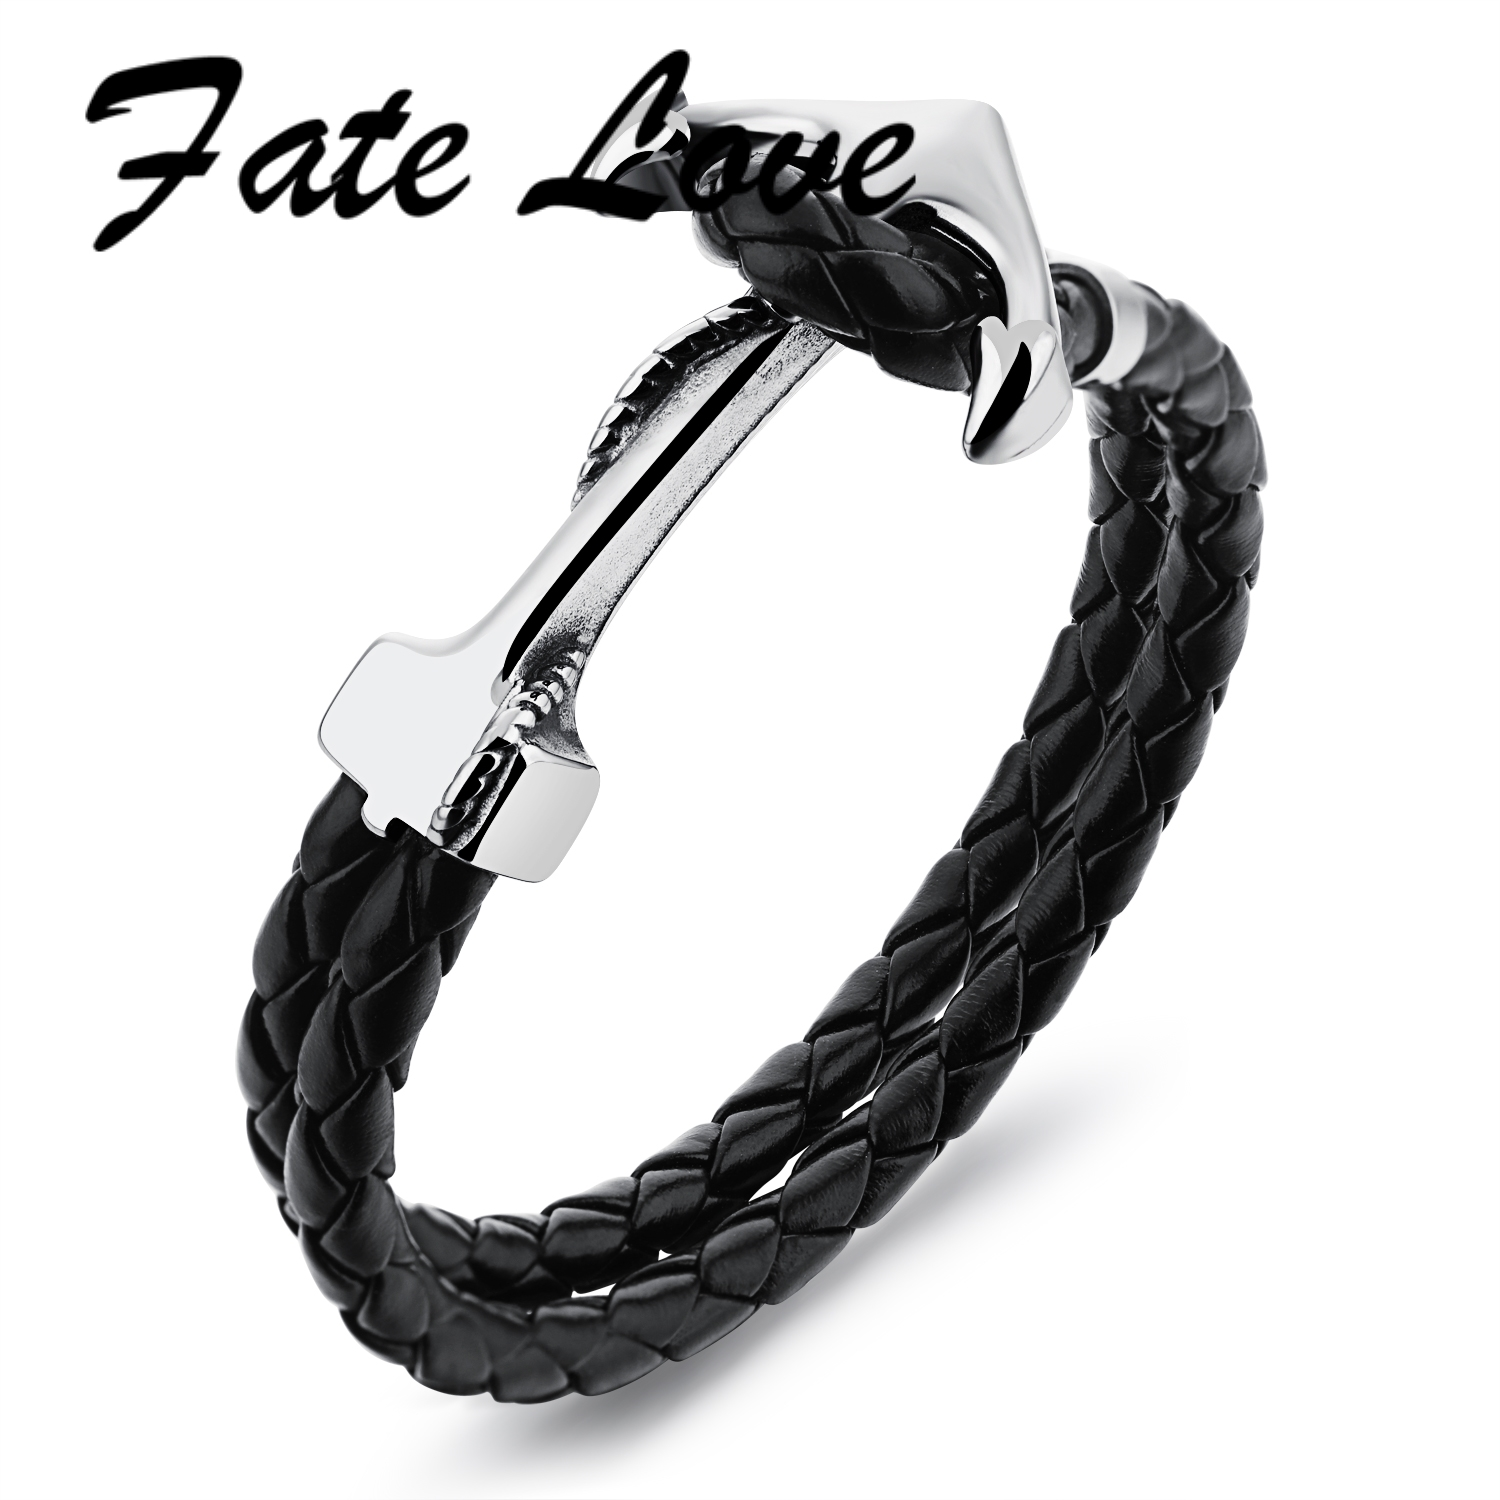 Fate Love Fashion Braided Rope Black Genuine Cowhide Bracelets Stainless Steel Anchor Leather Bangles Cool Wrap Bracelet FL1096 4 pcs cowhide rope hand bracelet